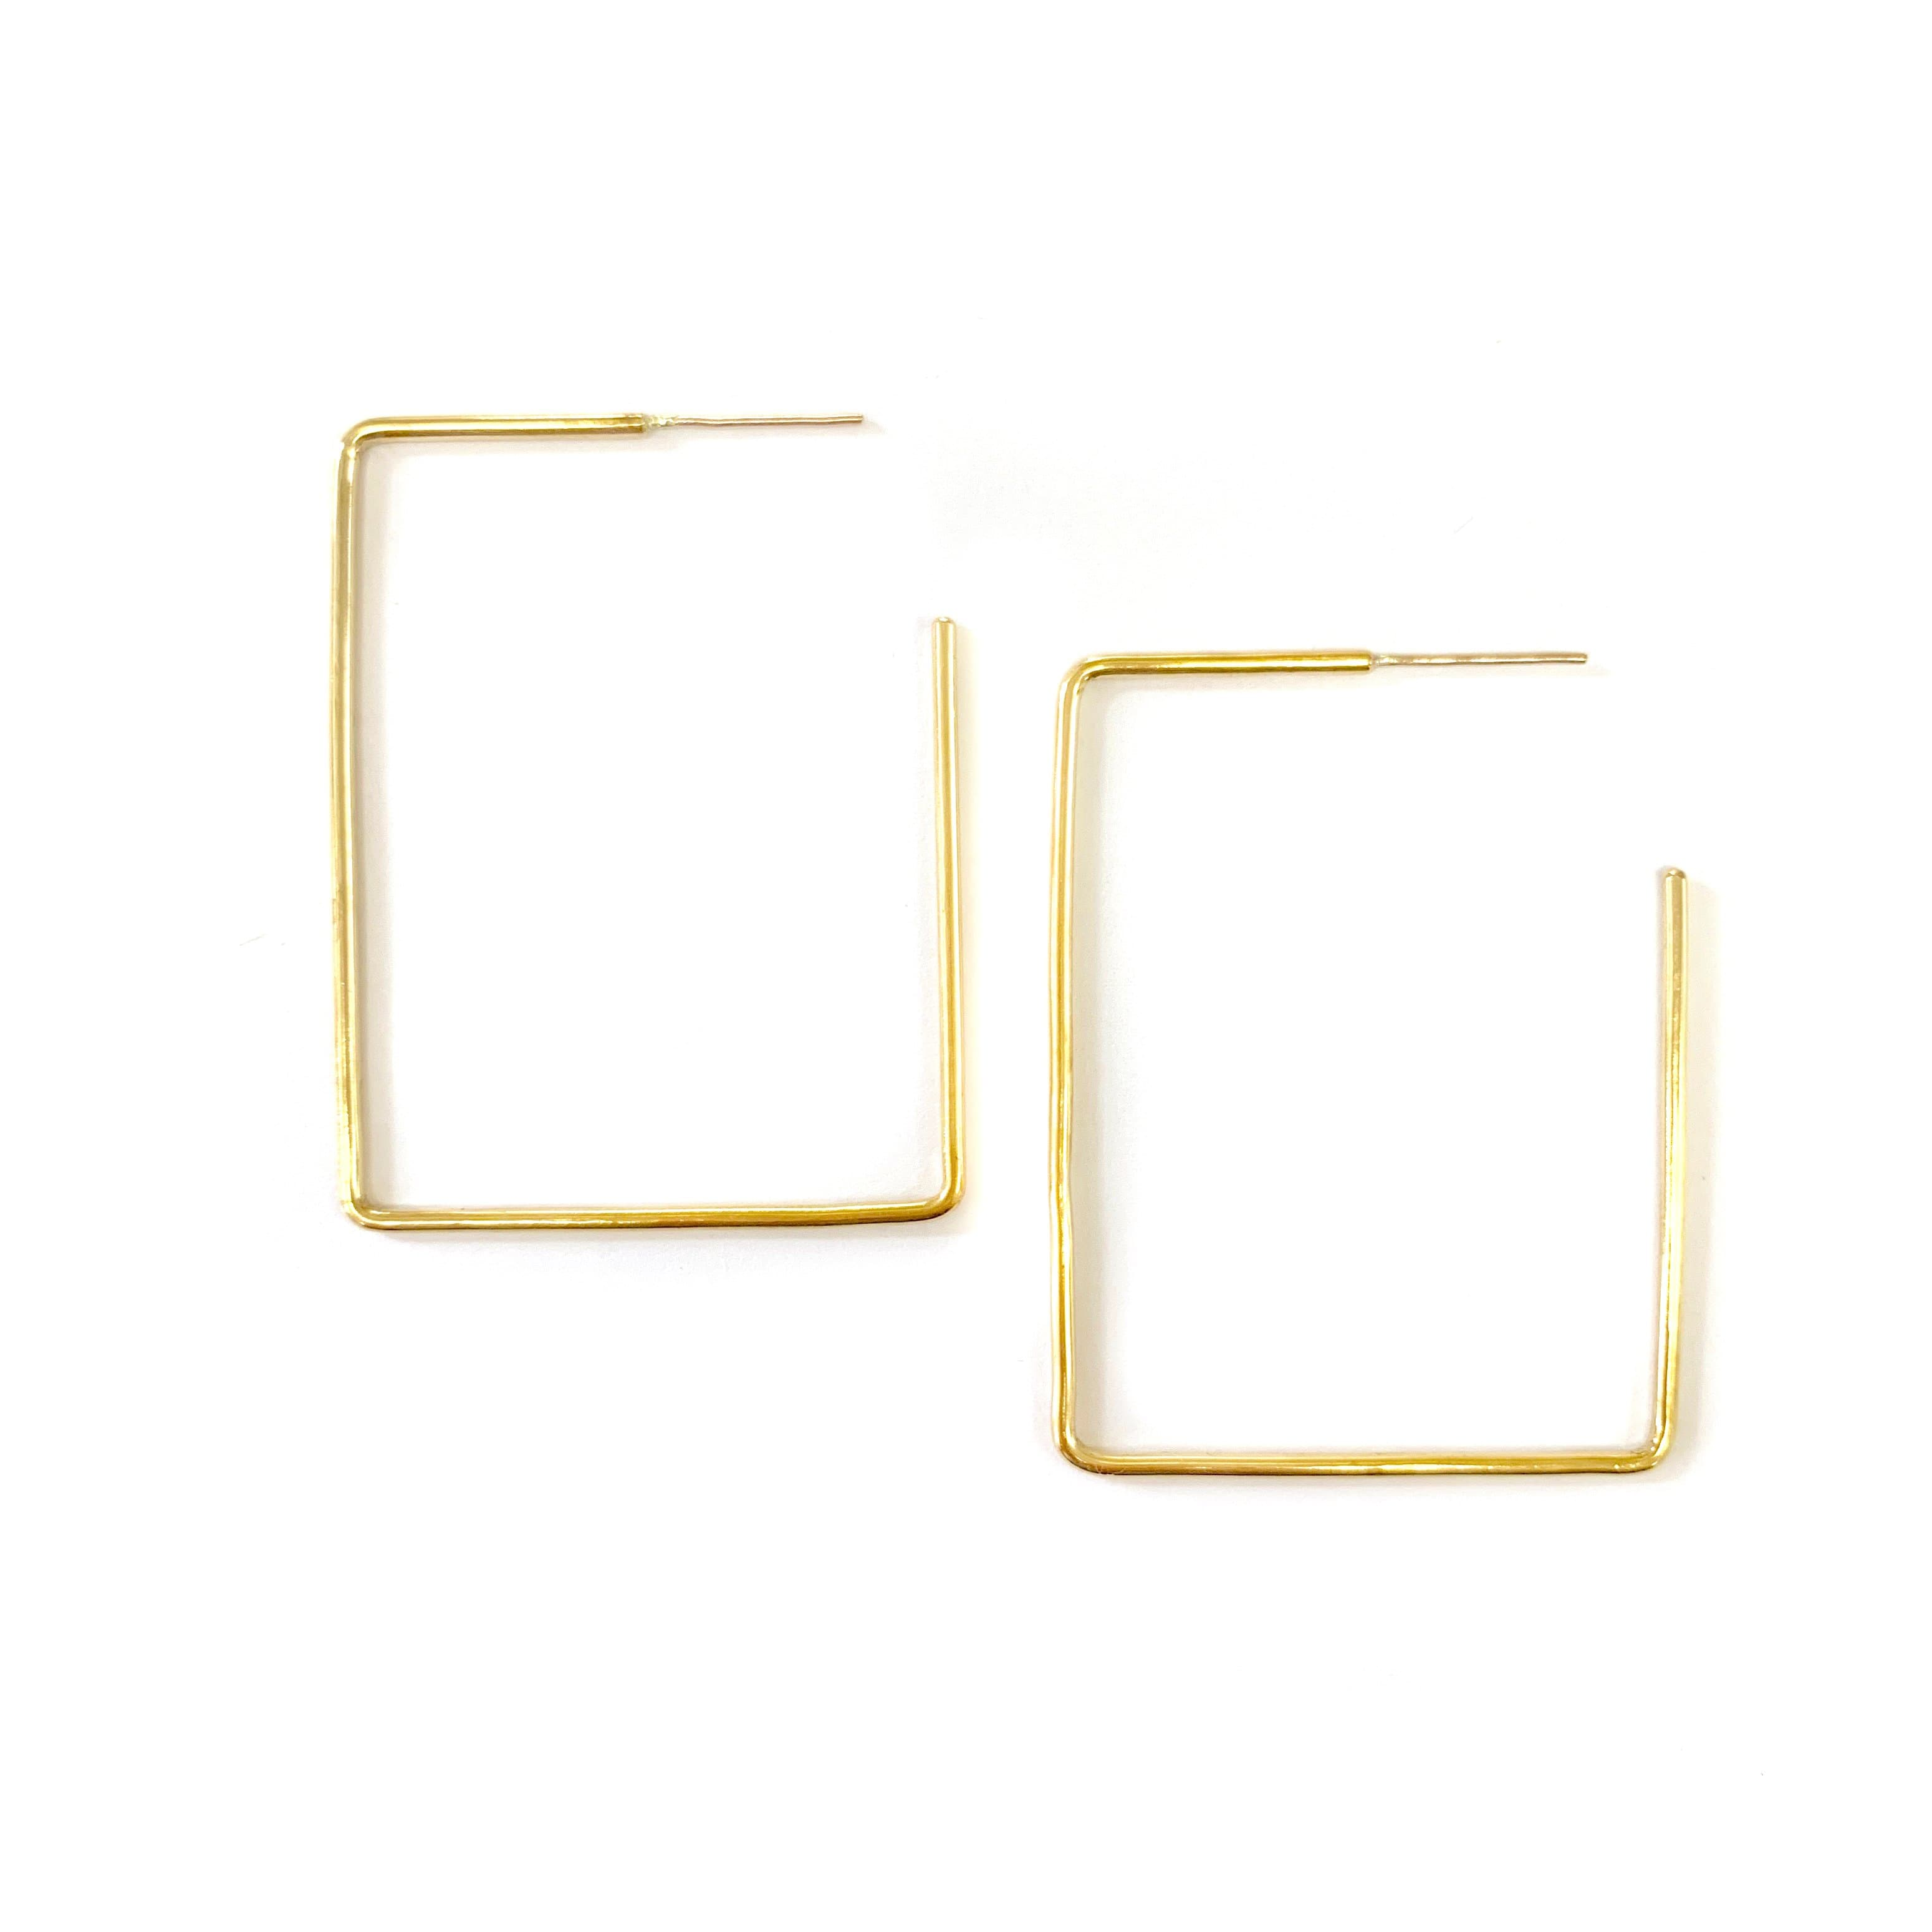 Rectangle Earring | Large, Earrings, adorn512, adorn512